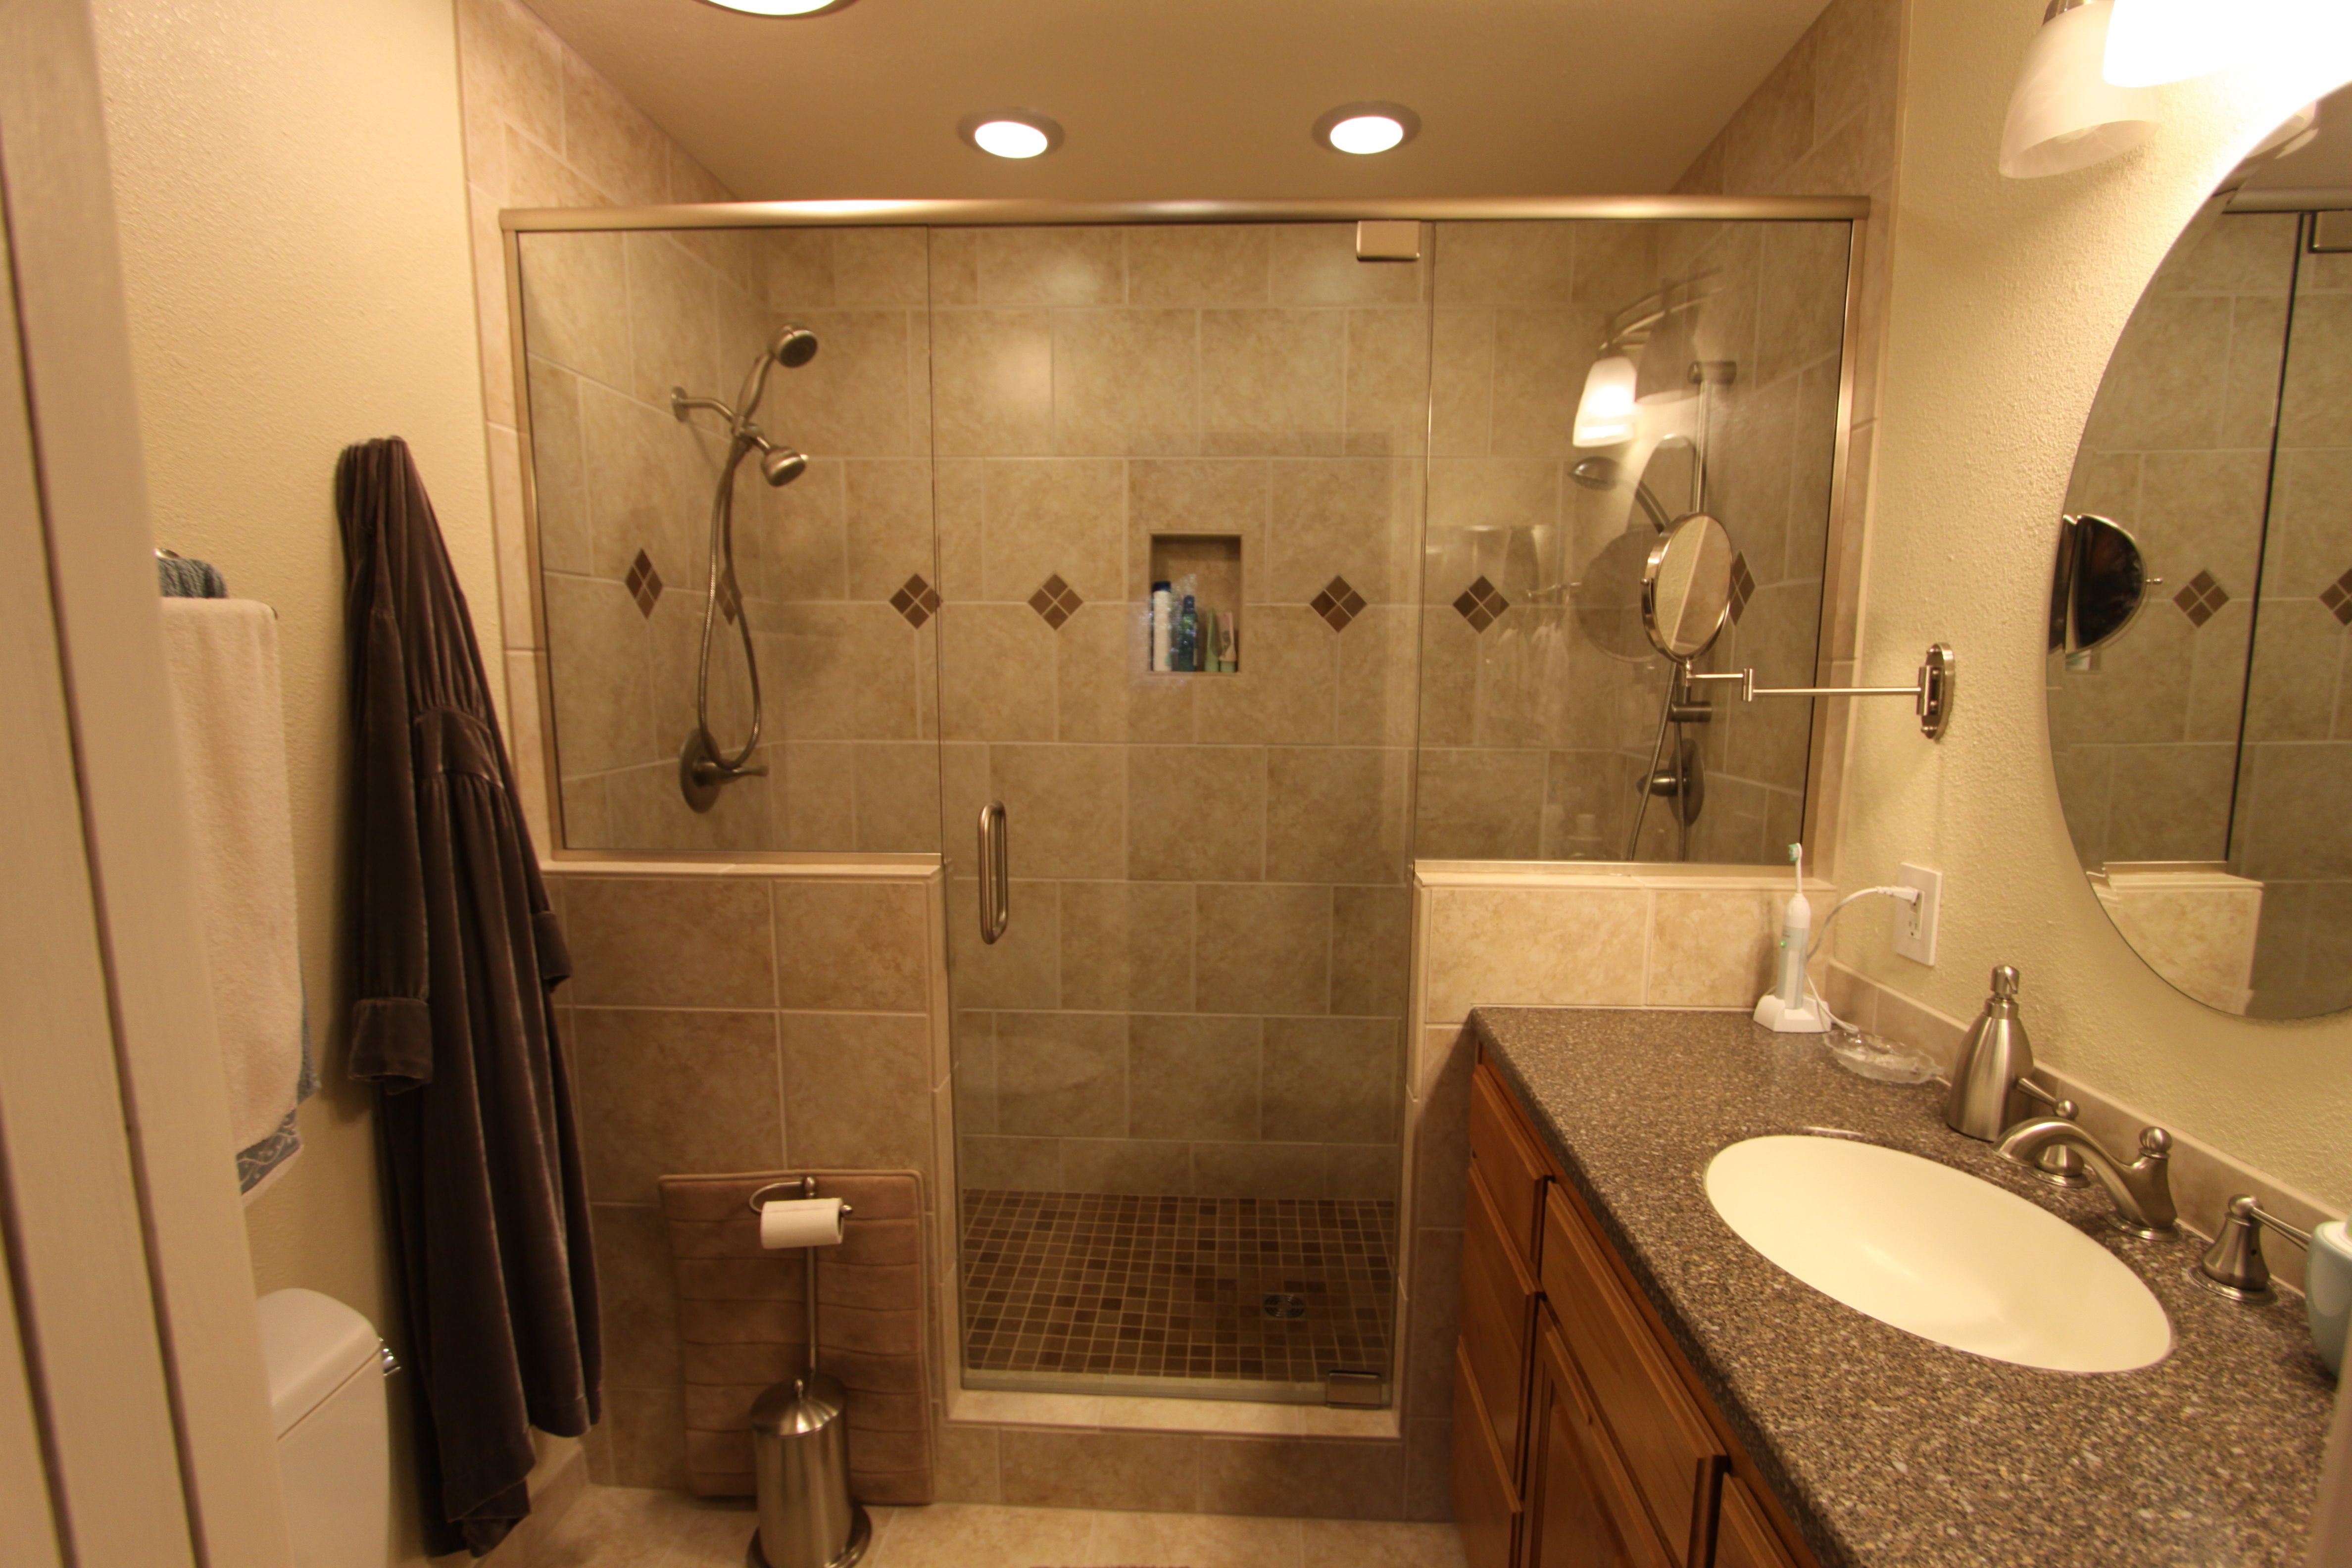 Small Condo Remodeling Ideas - Bathroom Designs For Small Spaces